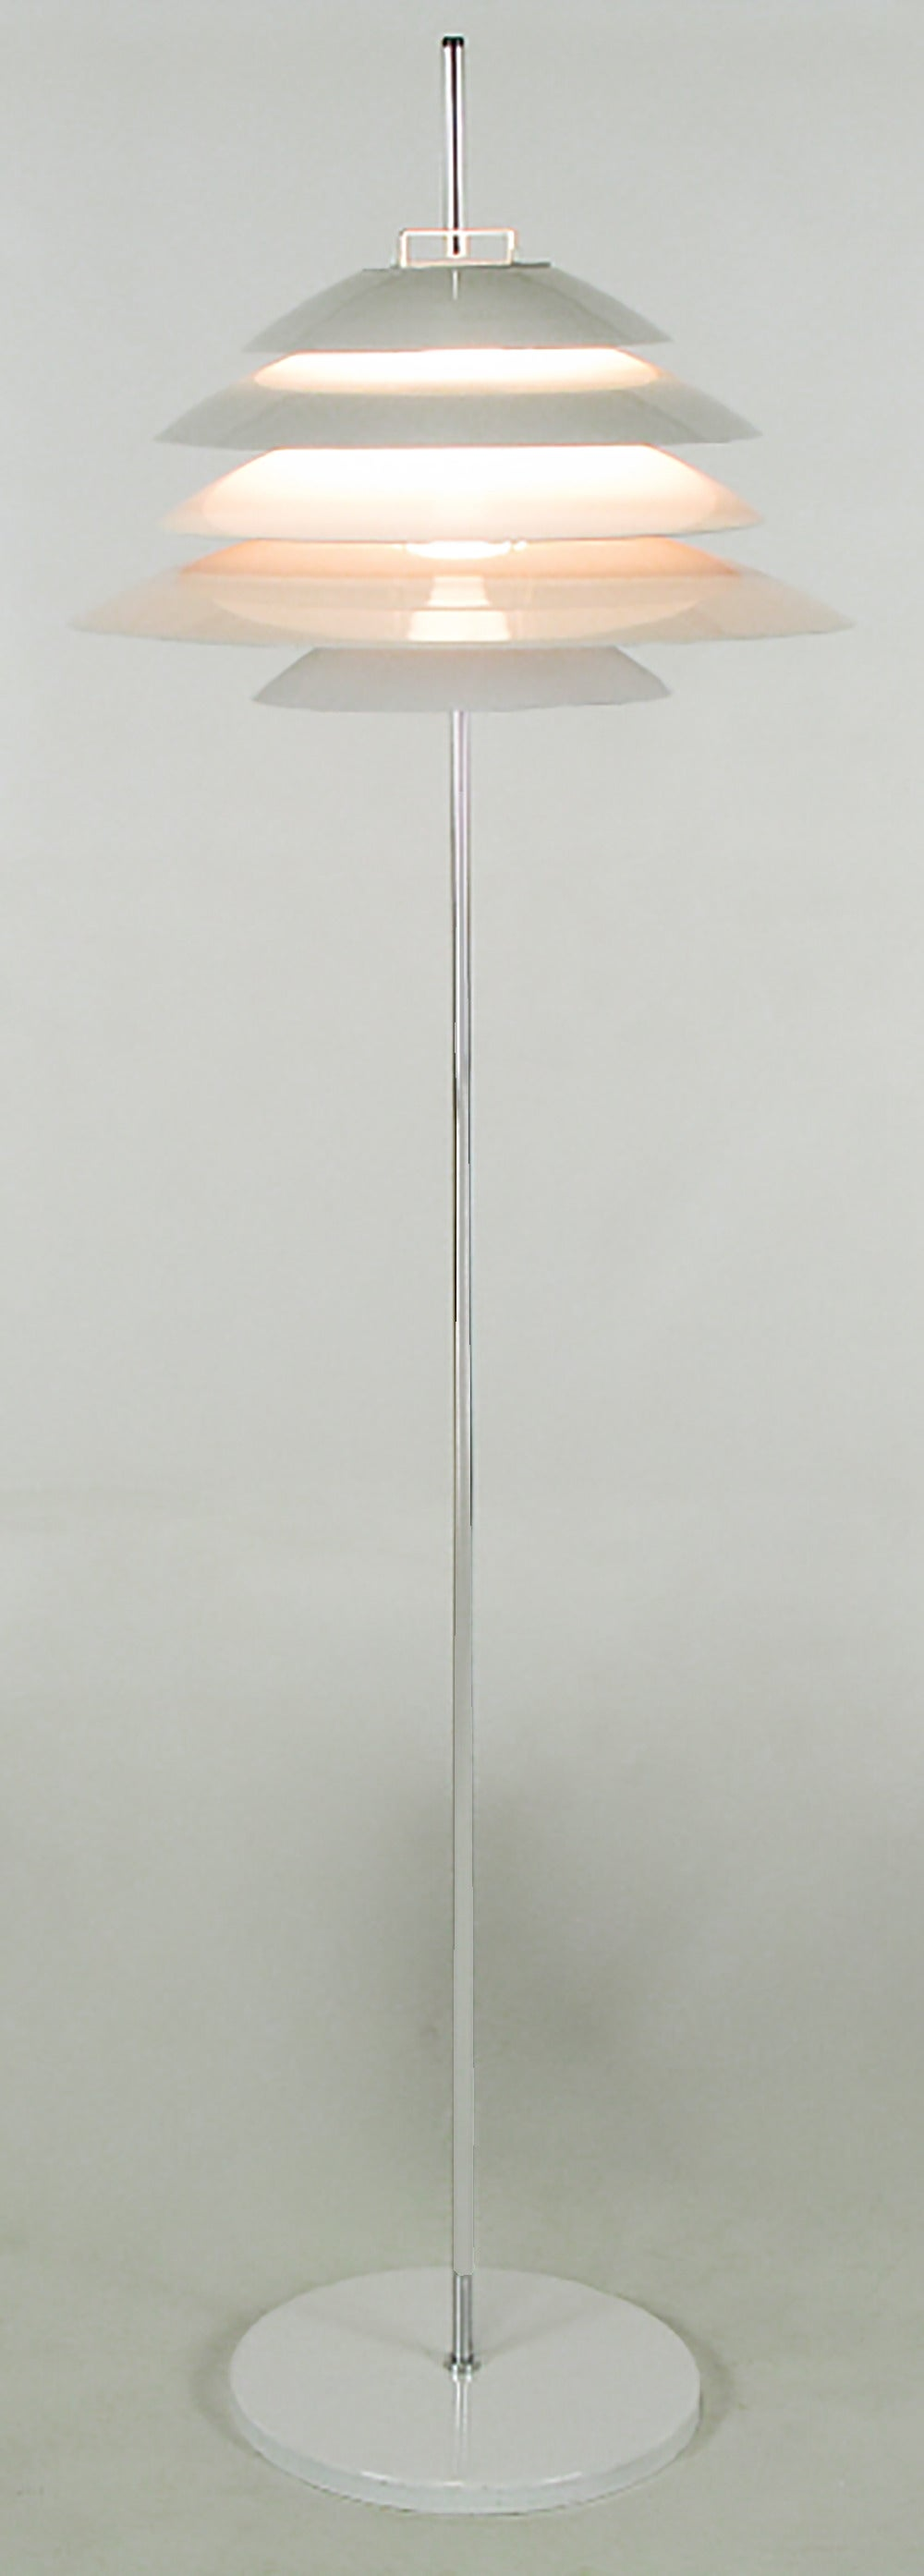 Very sculptural floor lamp by Robert Sonneman. Has layers of white metal shading to baffle the bulb, resulting in very atmospheric lighting.